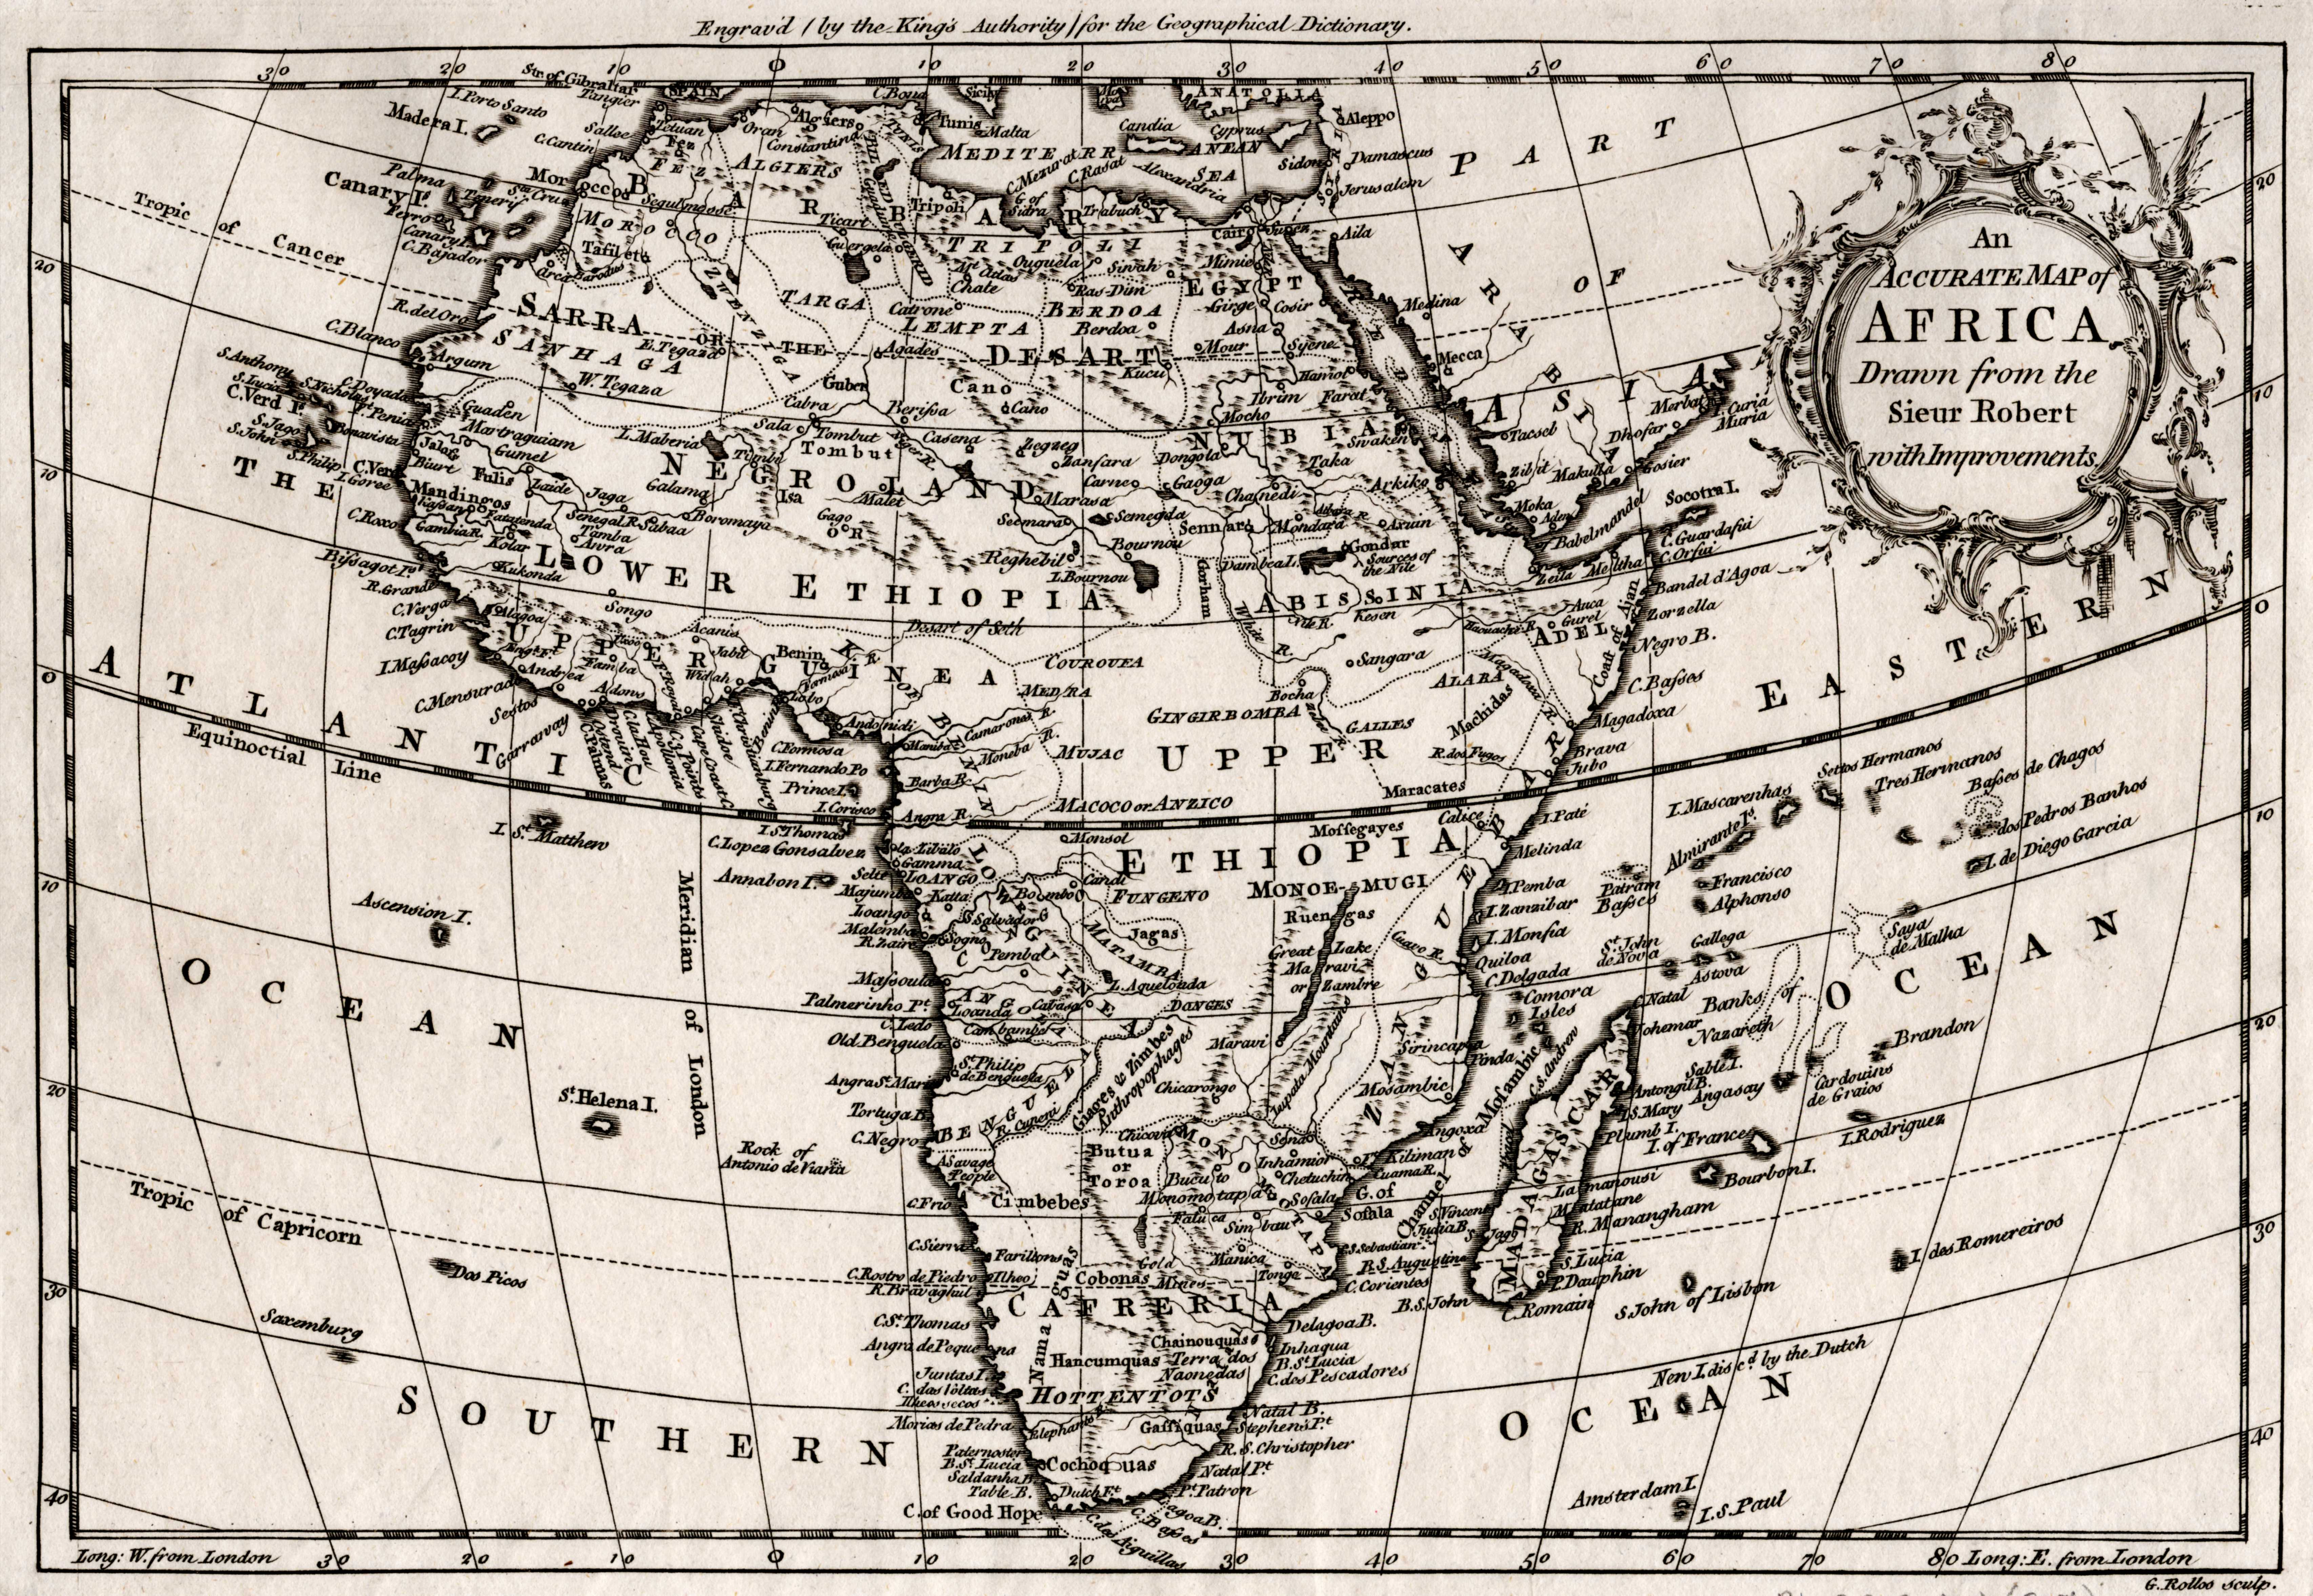 Accurate Map Of Africa.An Accurate Map Of Africa Drawn From The Sieur Robert With